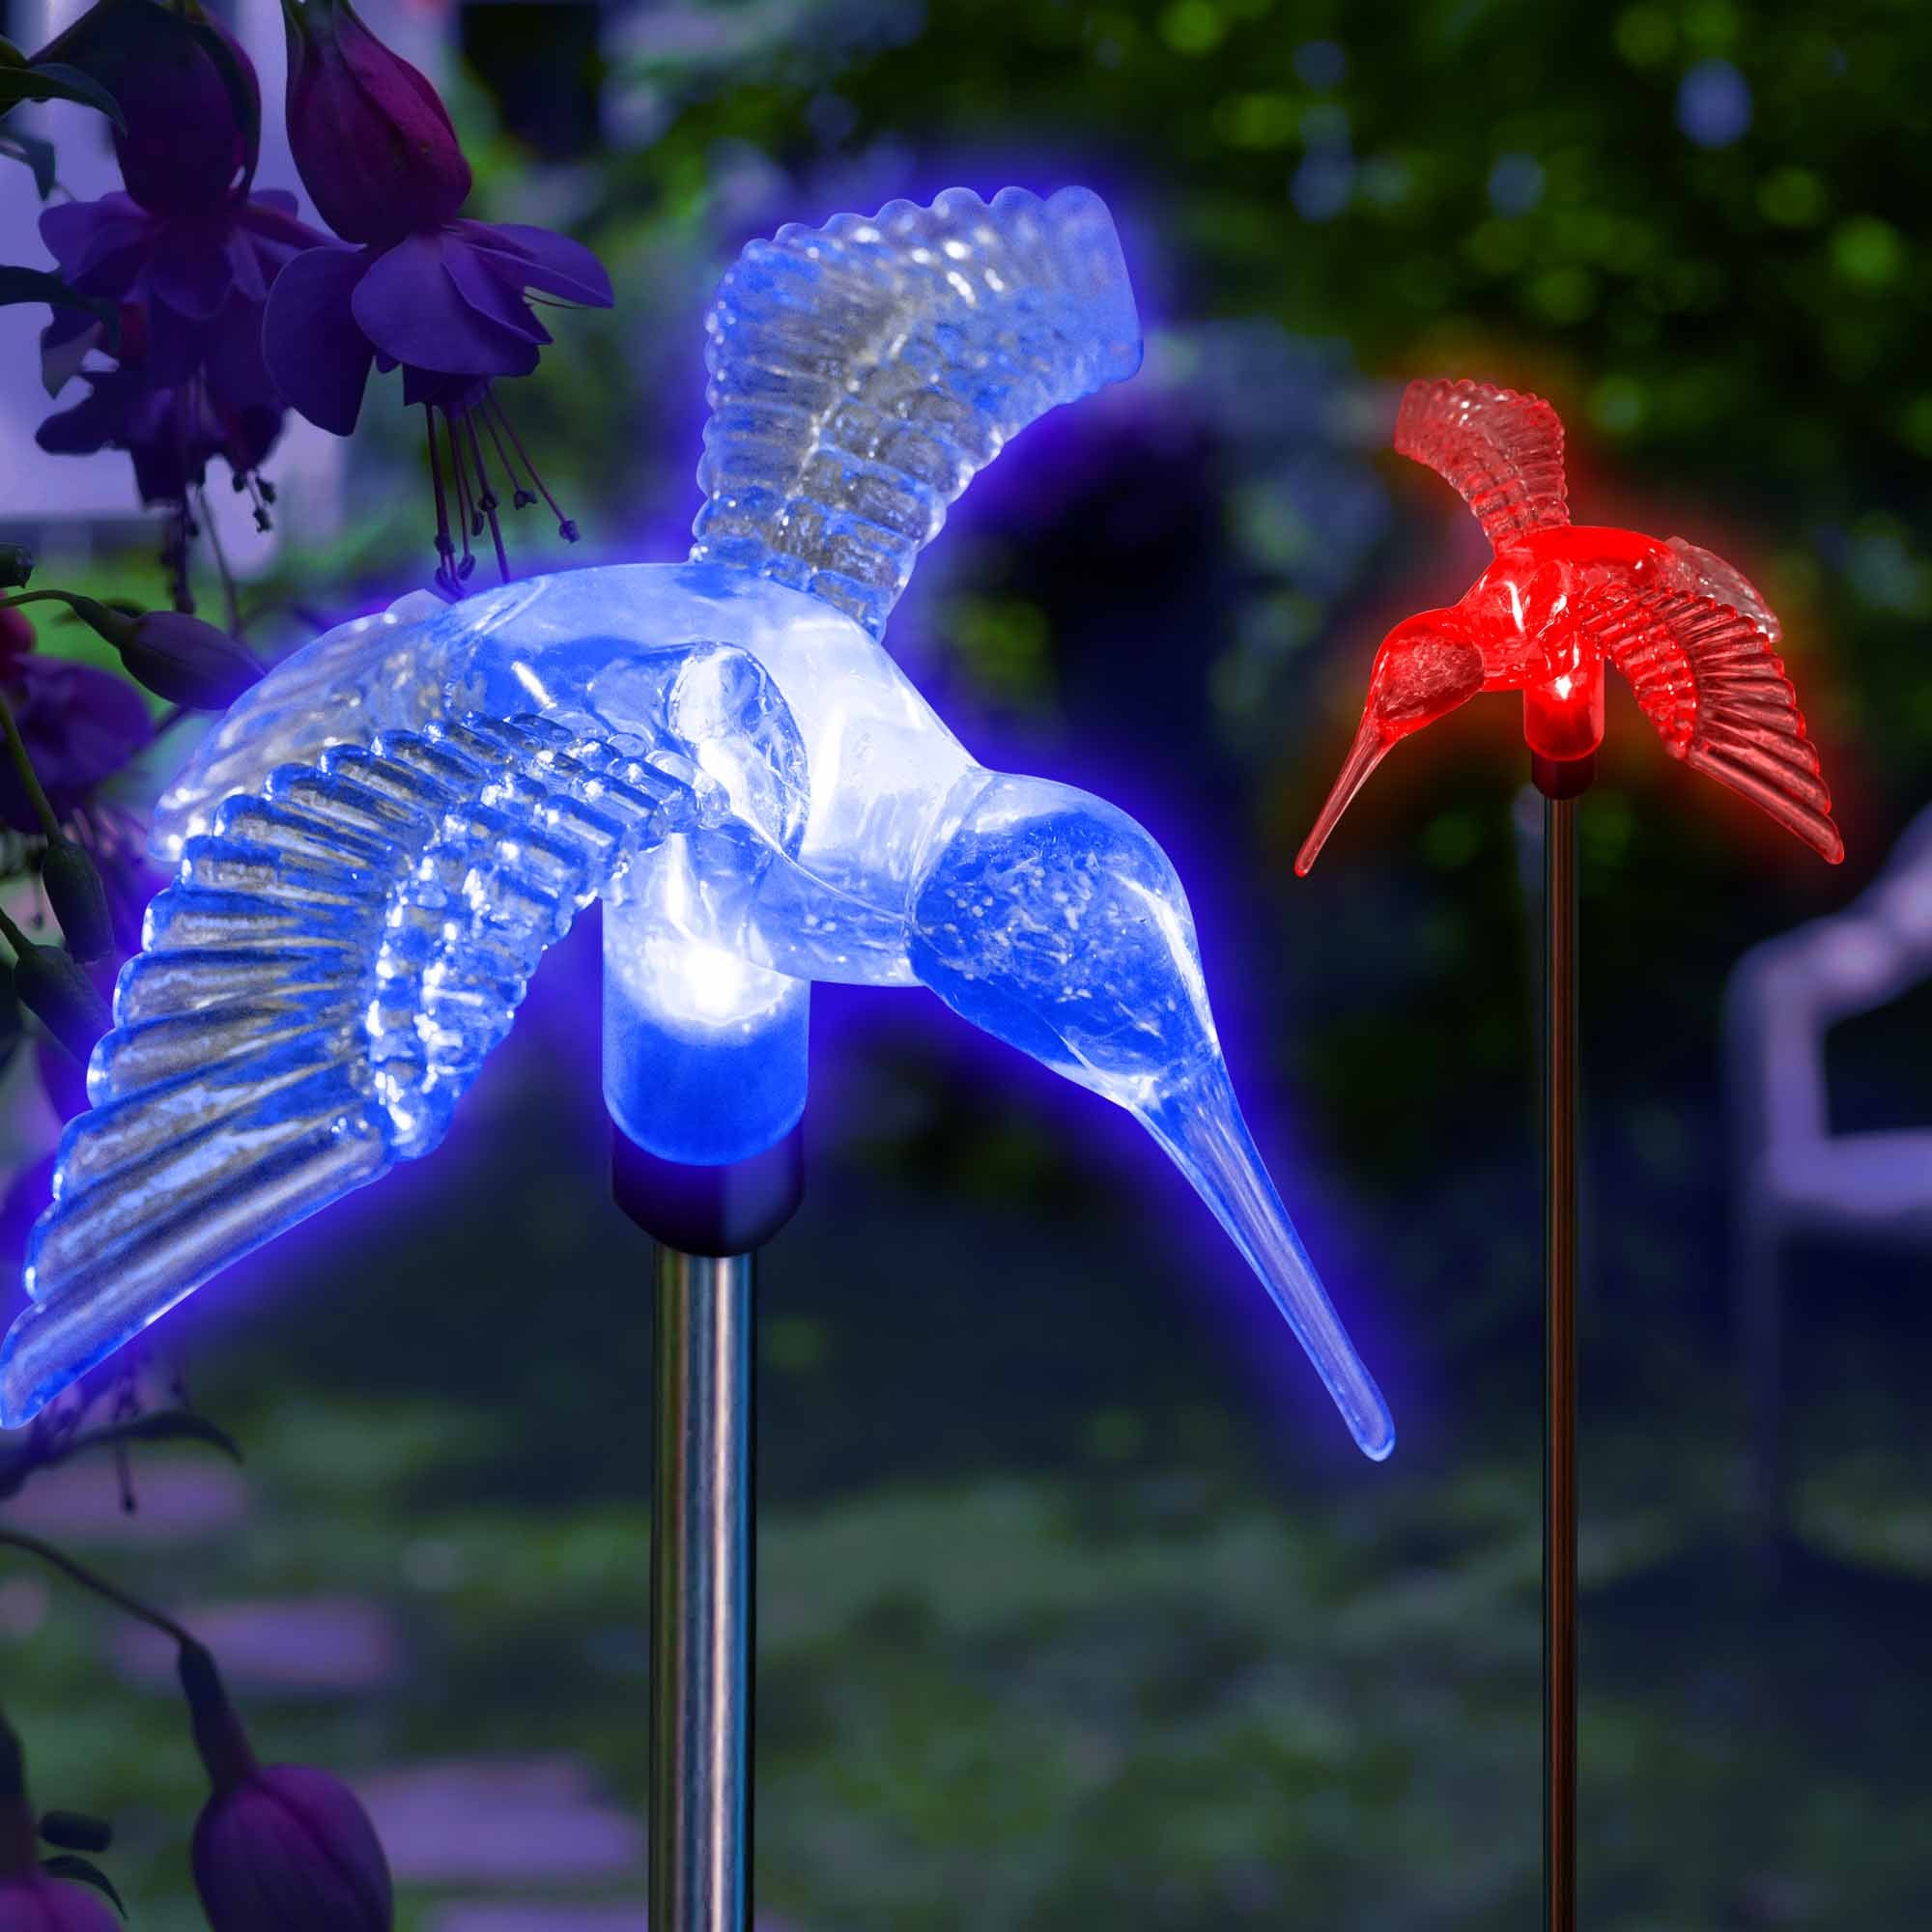 Solar Outdoor Garden Lights Color Changing Hummingbirds For Lawn Patio Yard Decoration My